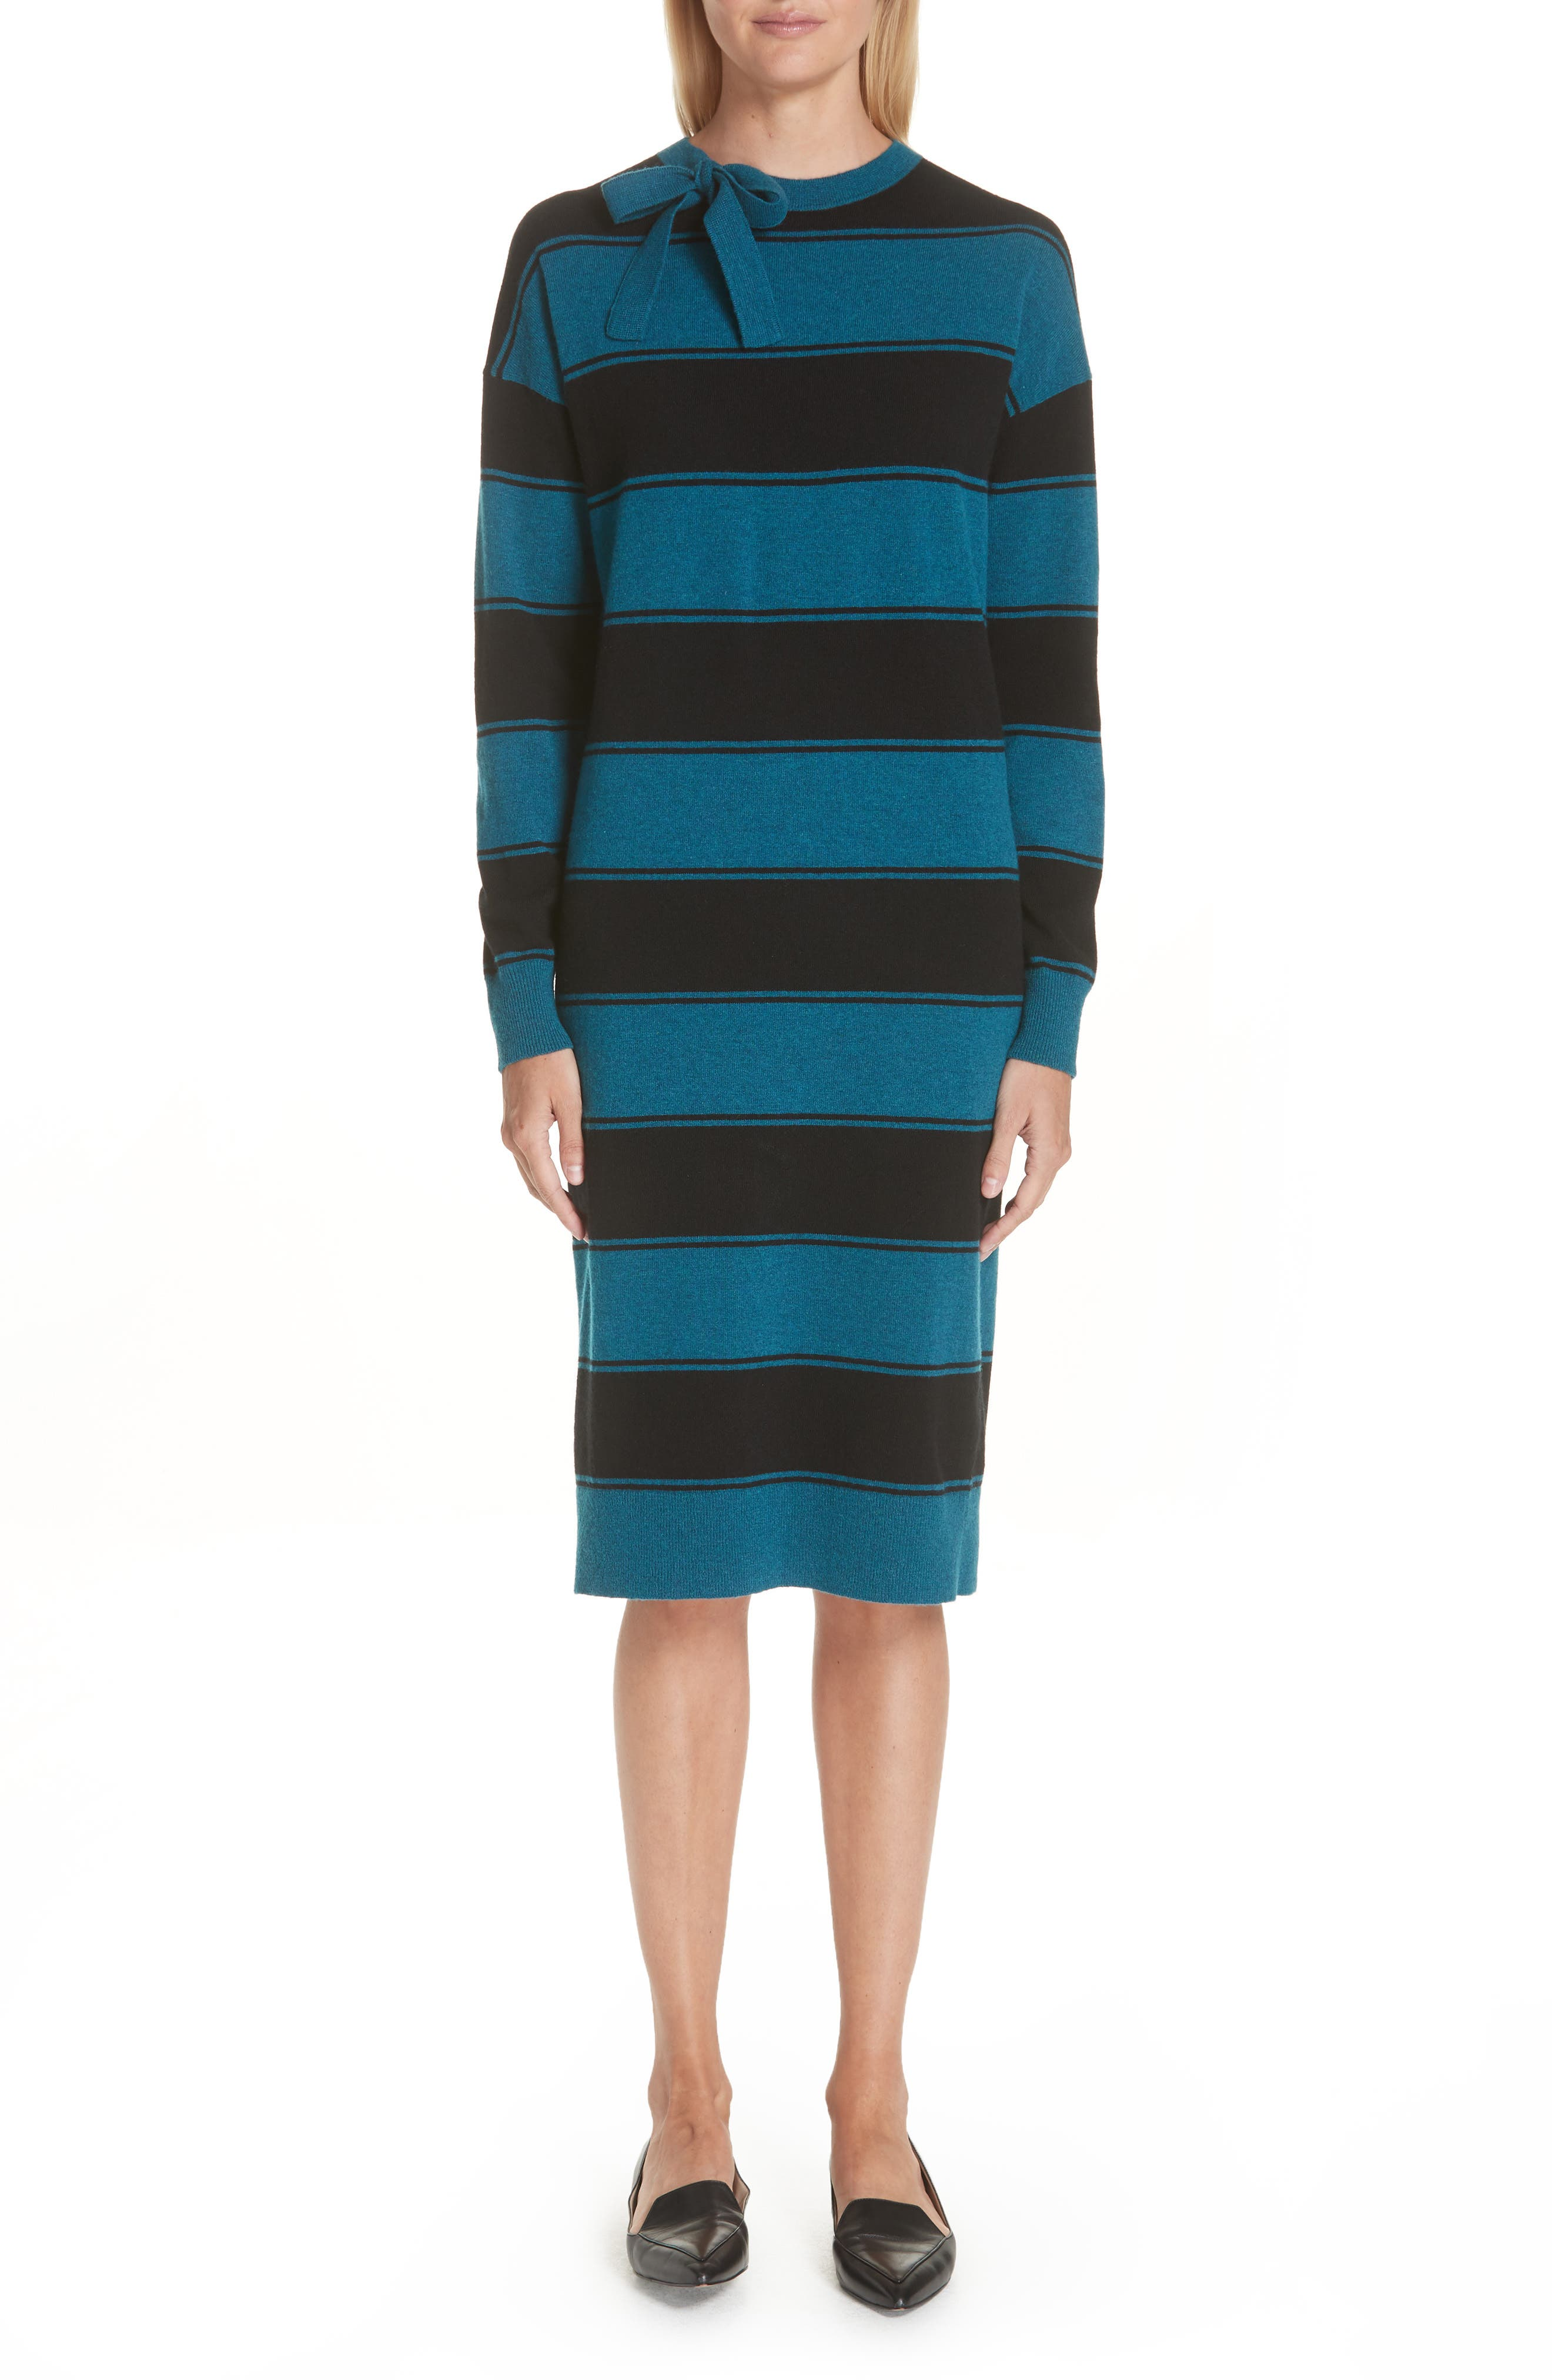 Marc Jacobs Tie Neck Stripe Wool Sweater Dress, Blue/green